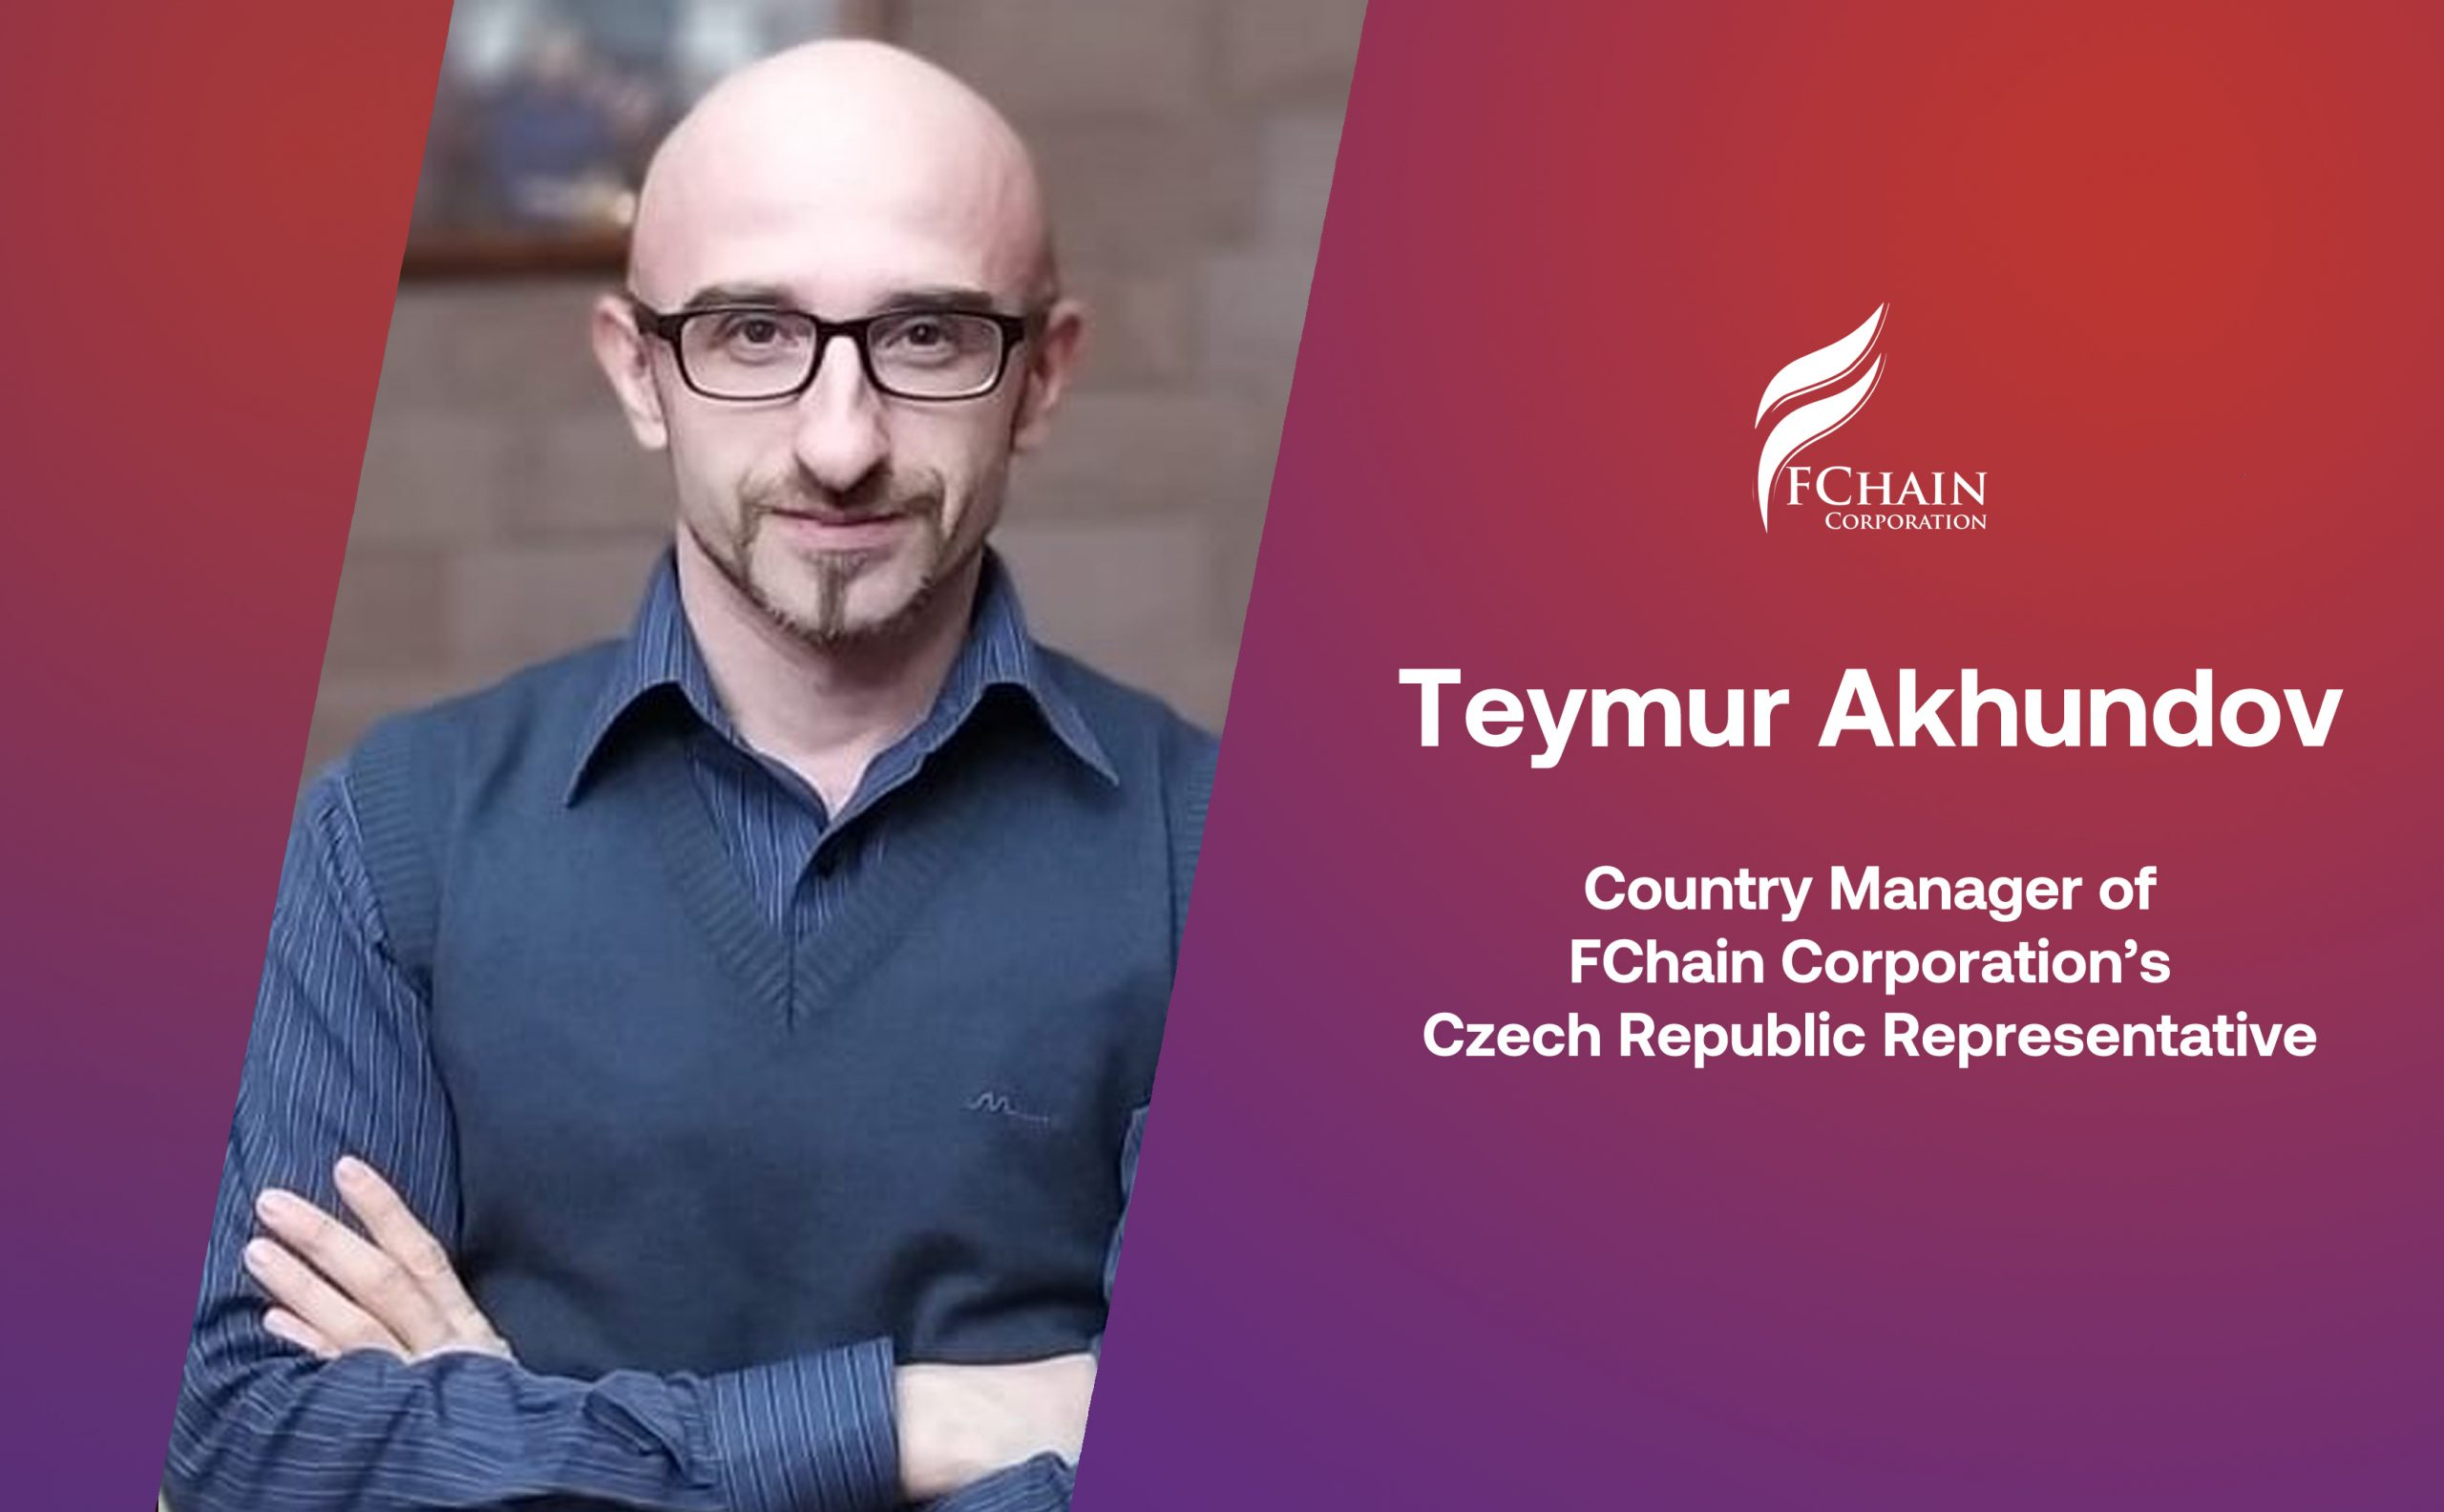 FCHAIN welcomes new employee appointment in Czech Republic